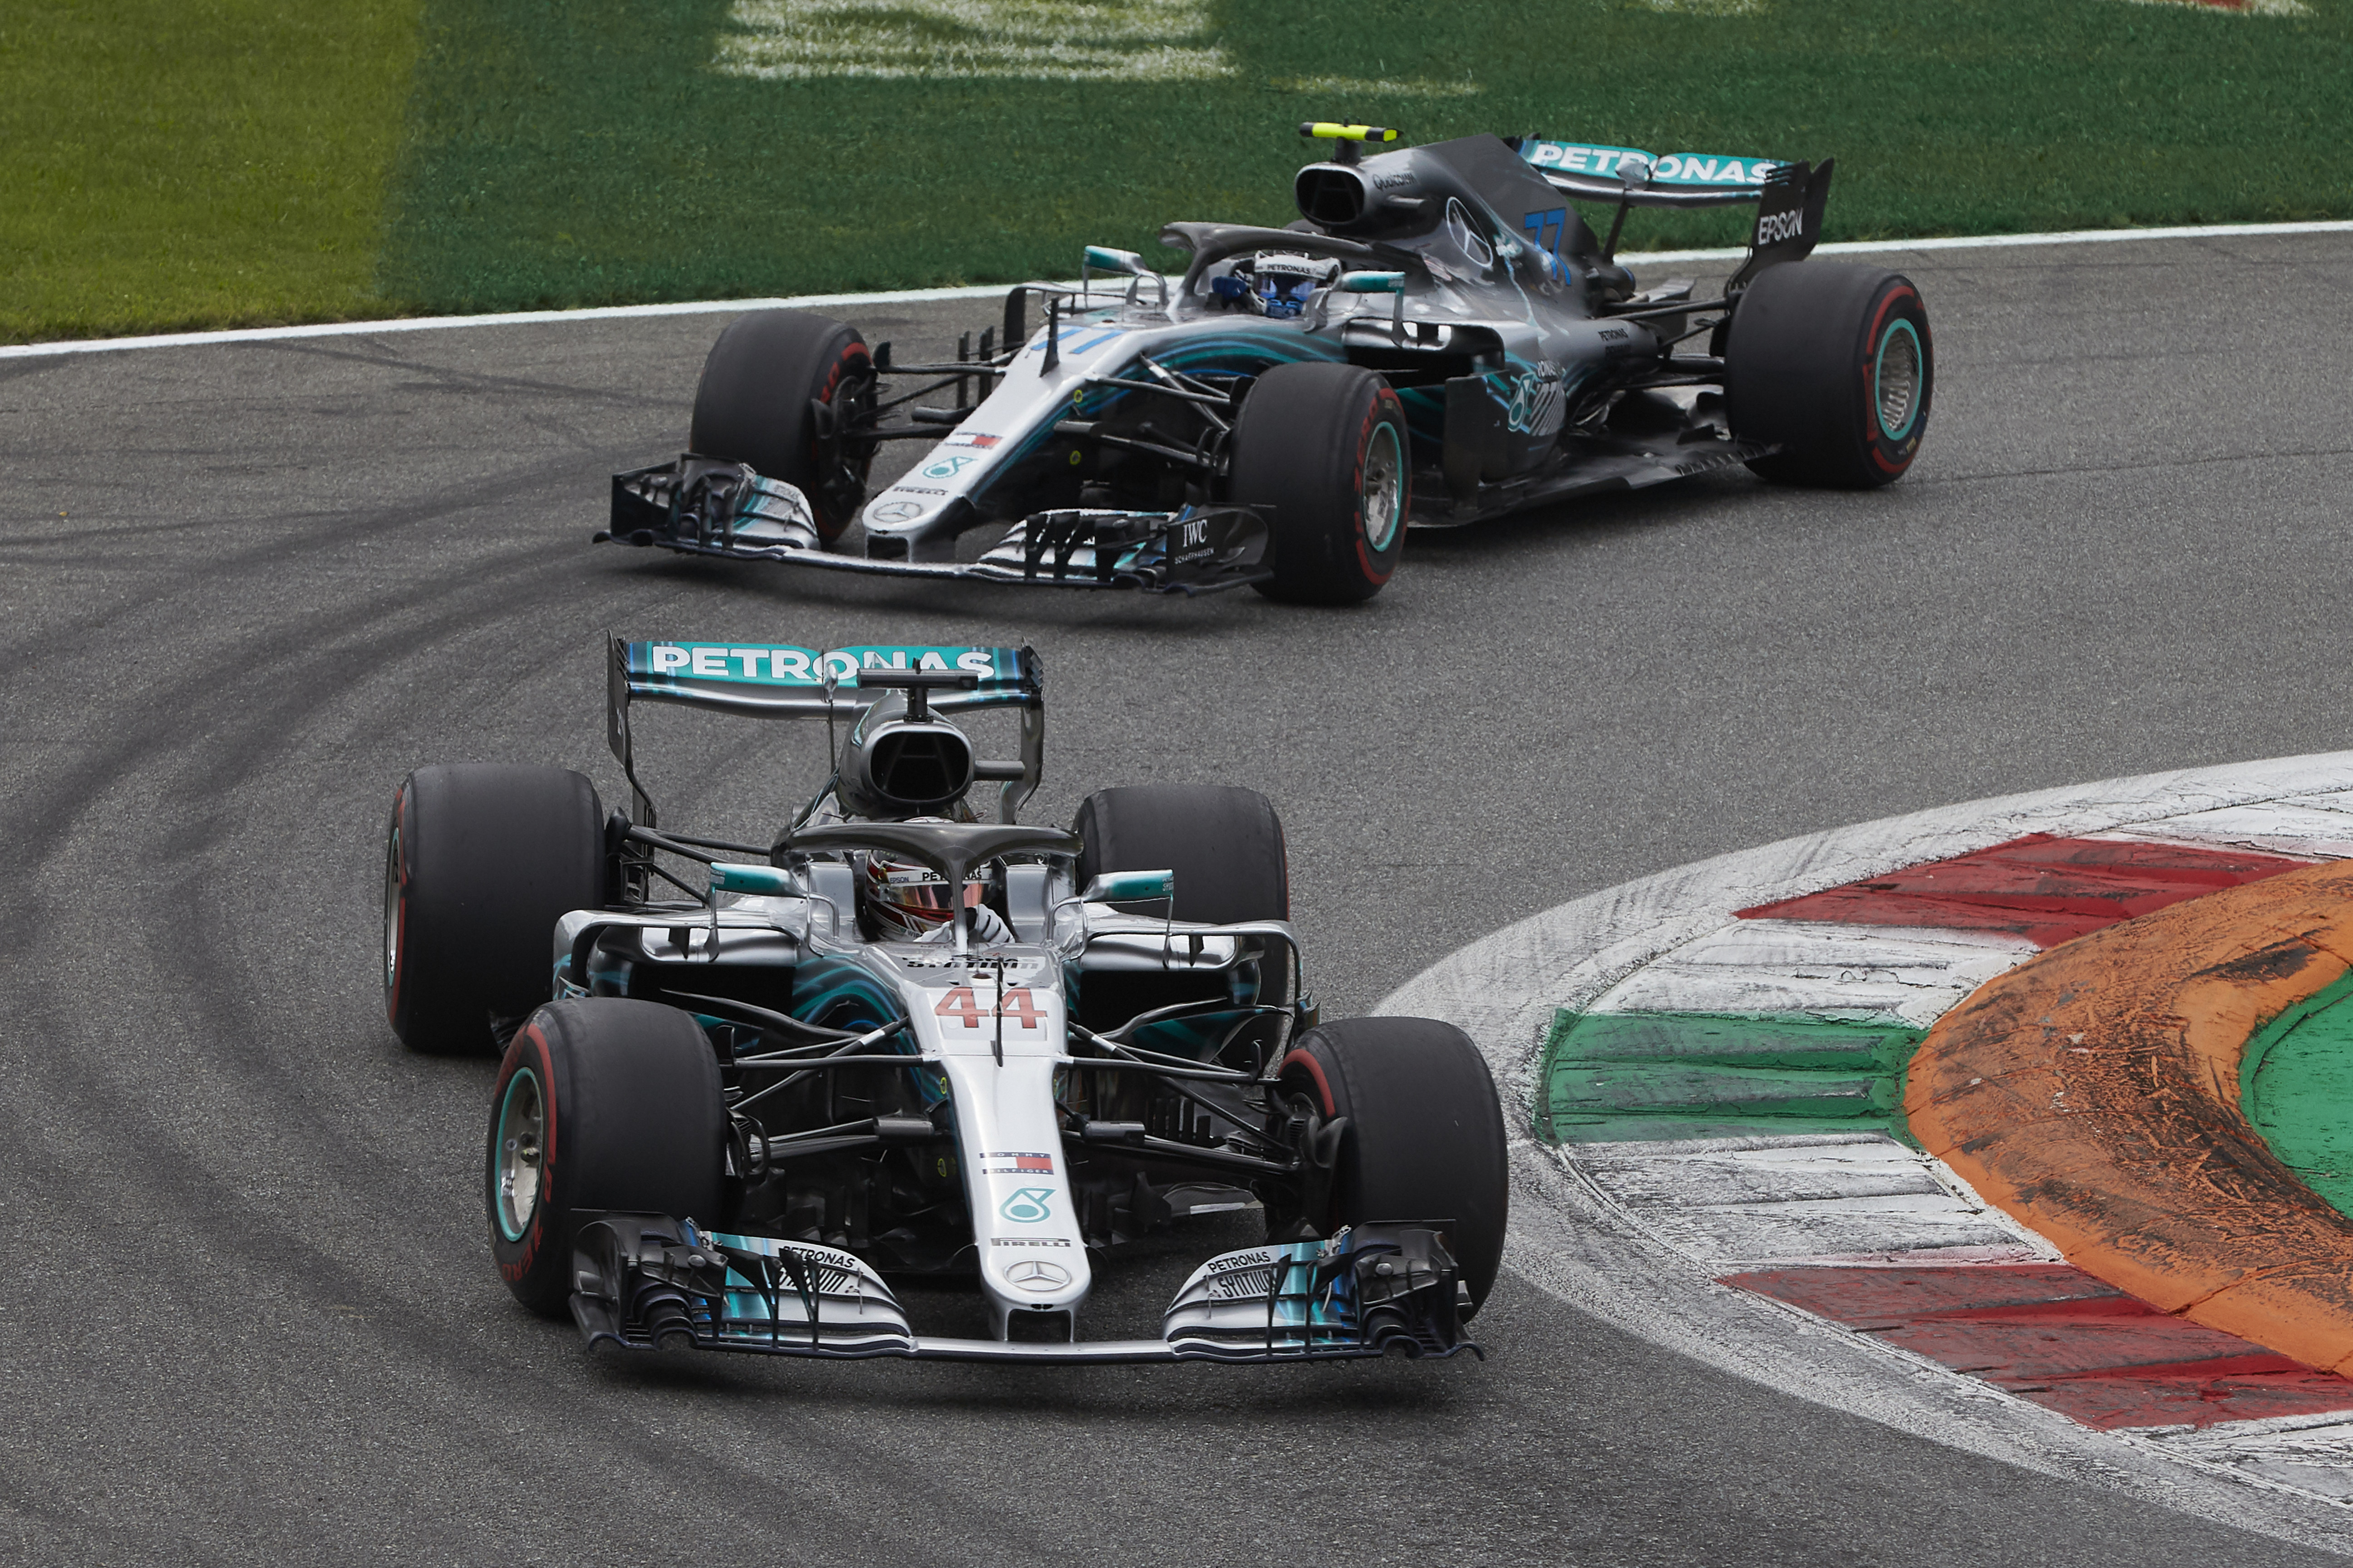 Mercedes Amg Petronas Motorsport Uses Data To Handle Constant Change The Tibco Blog